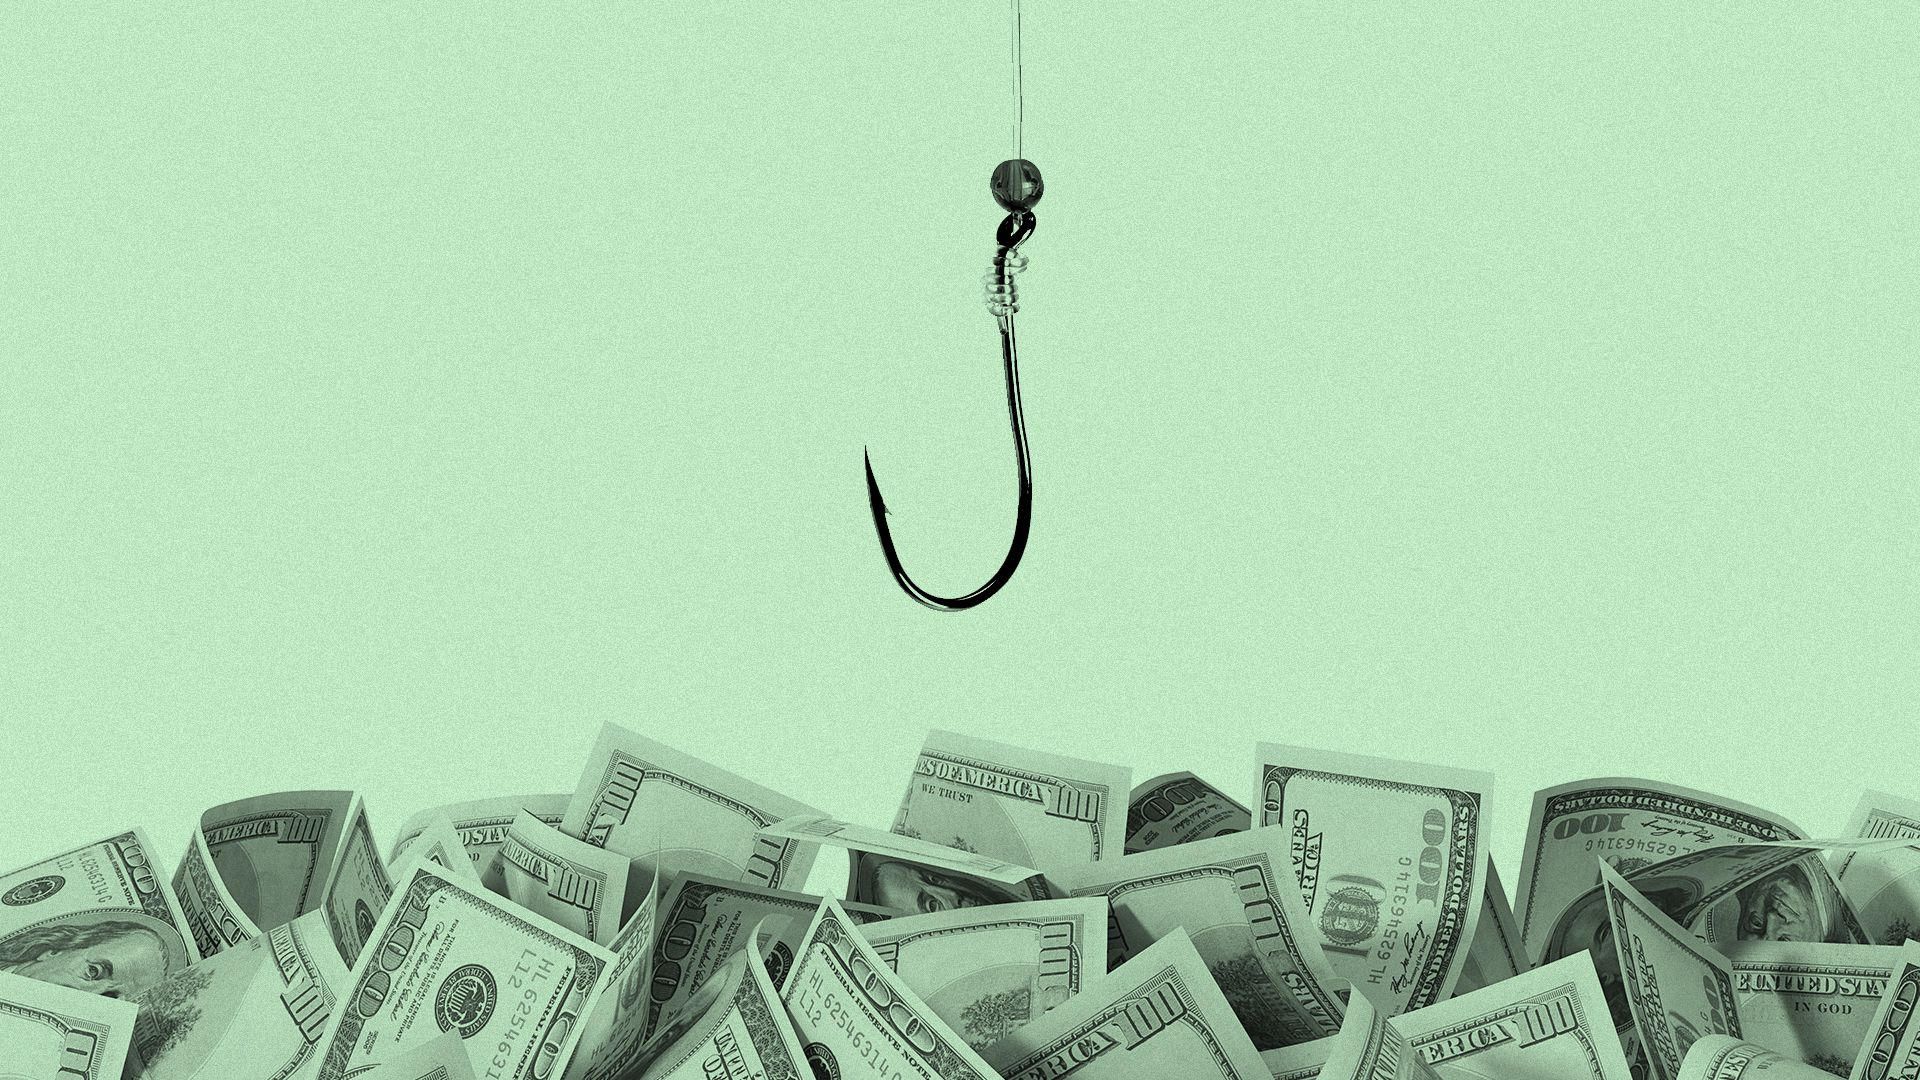 Illustration of a hook hovering over money.